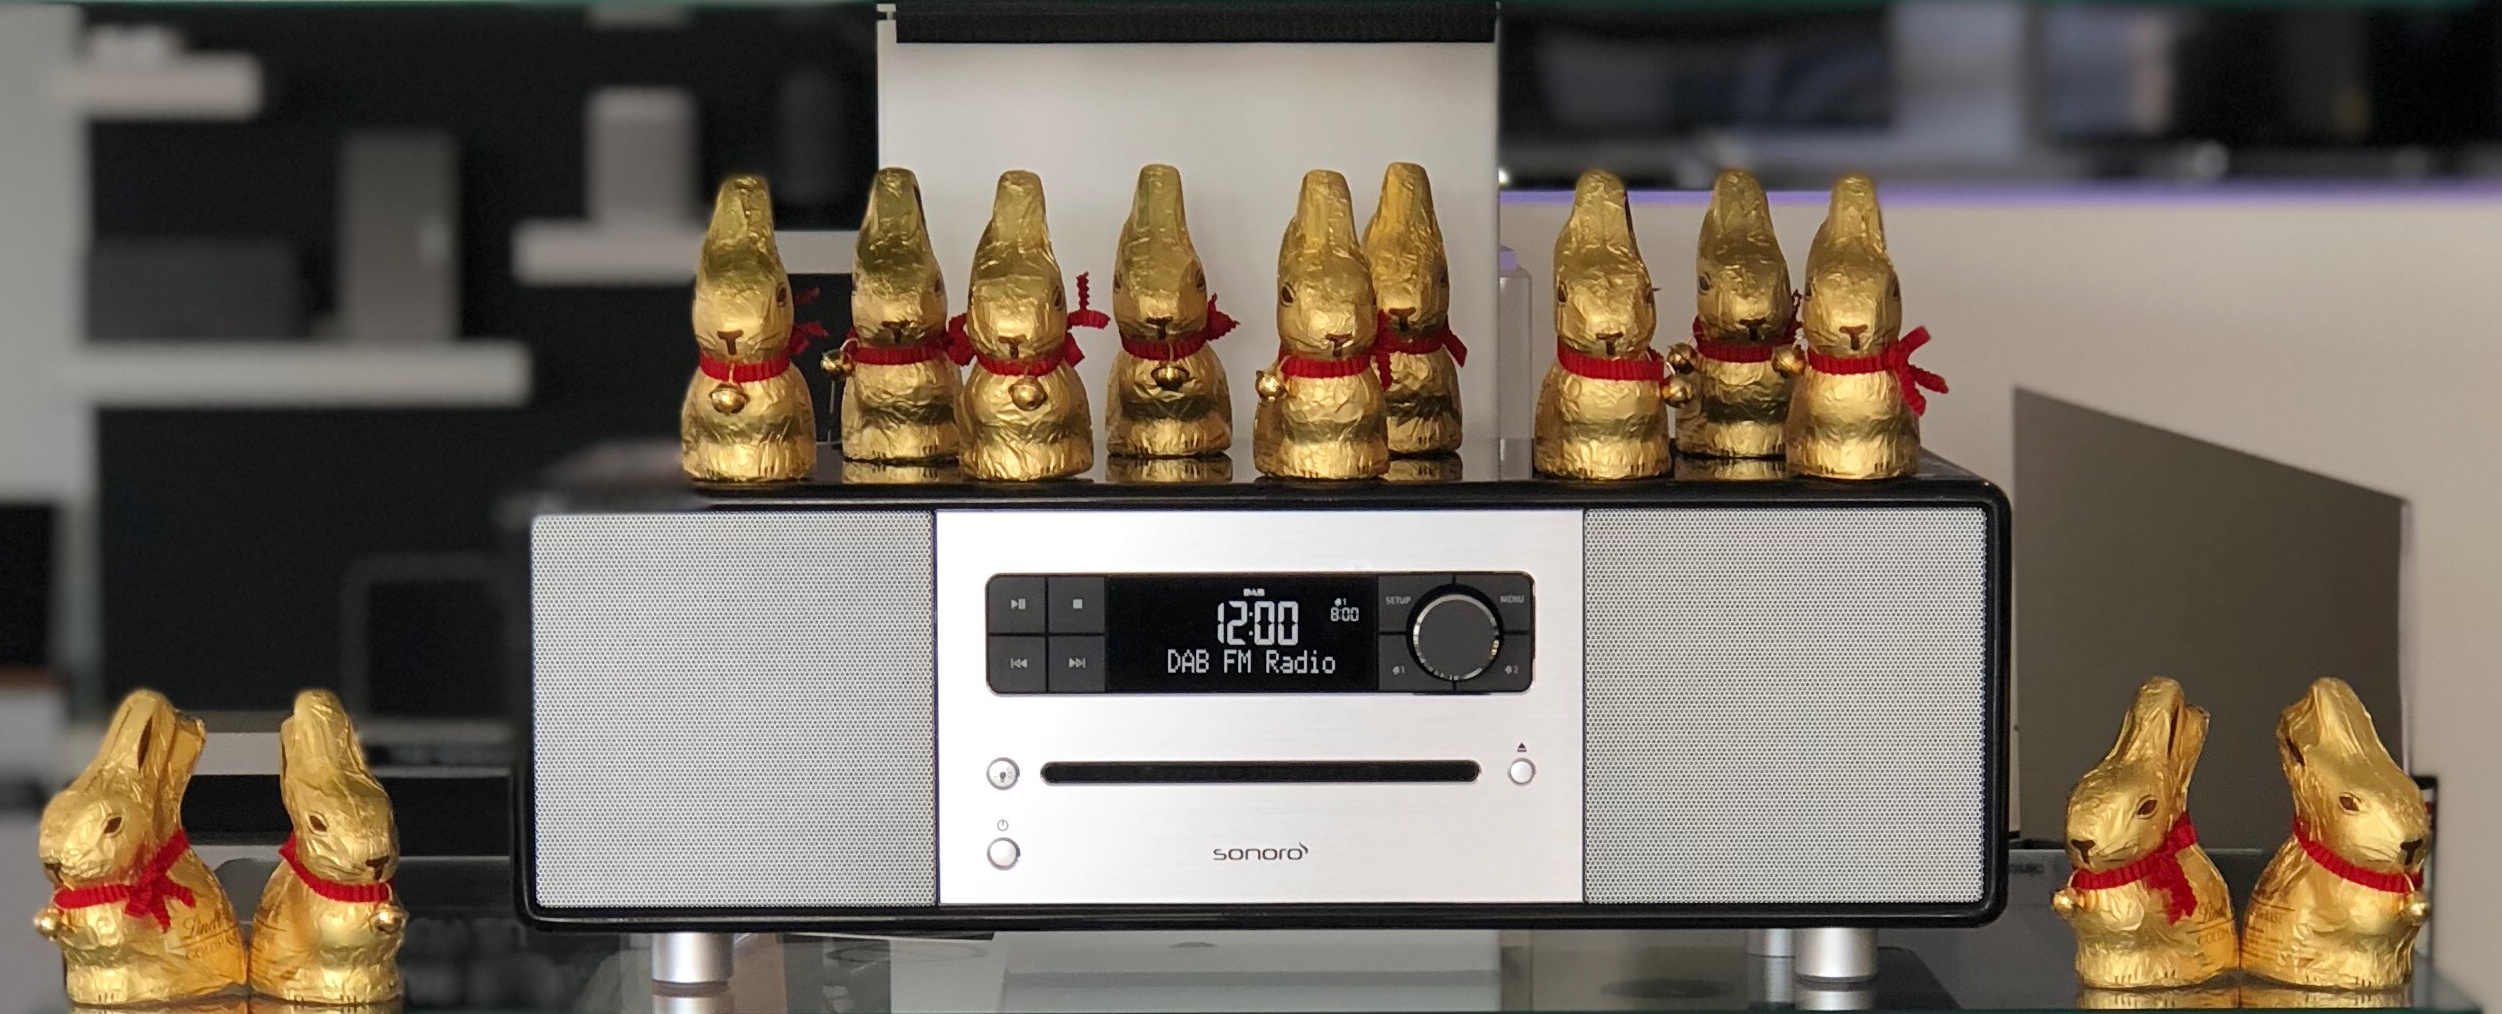 original_Sonoro-Stereo-Osterhase-TVFay-BadSoden